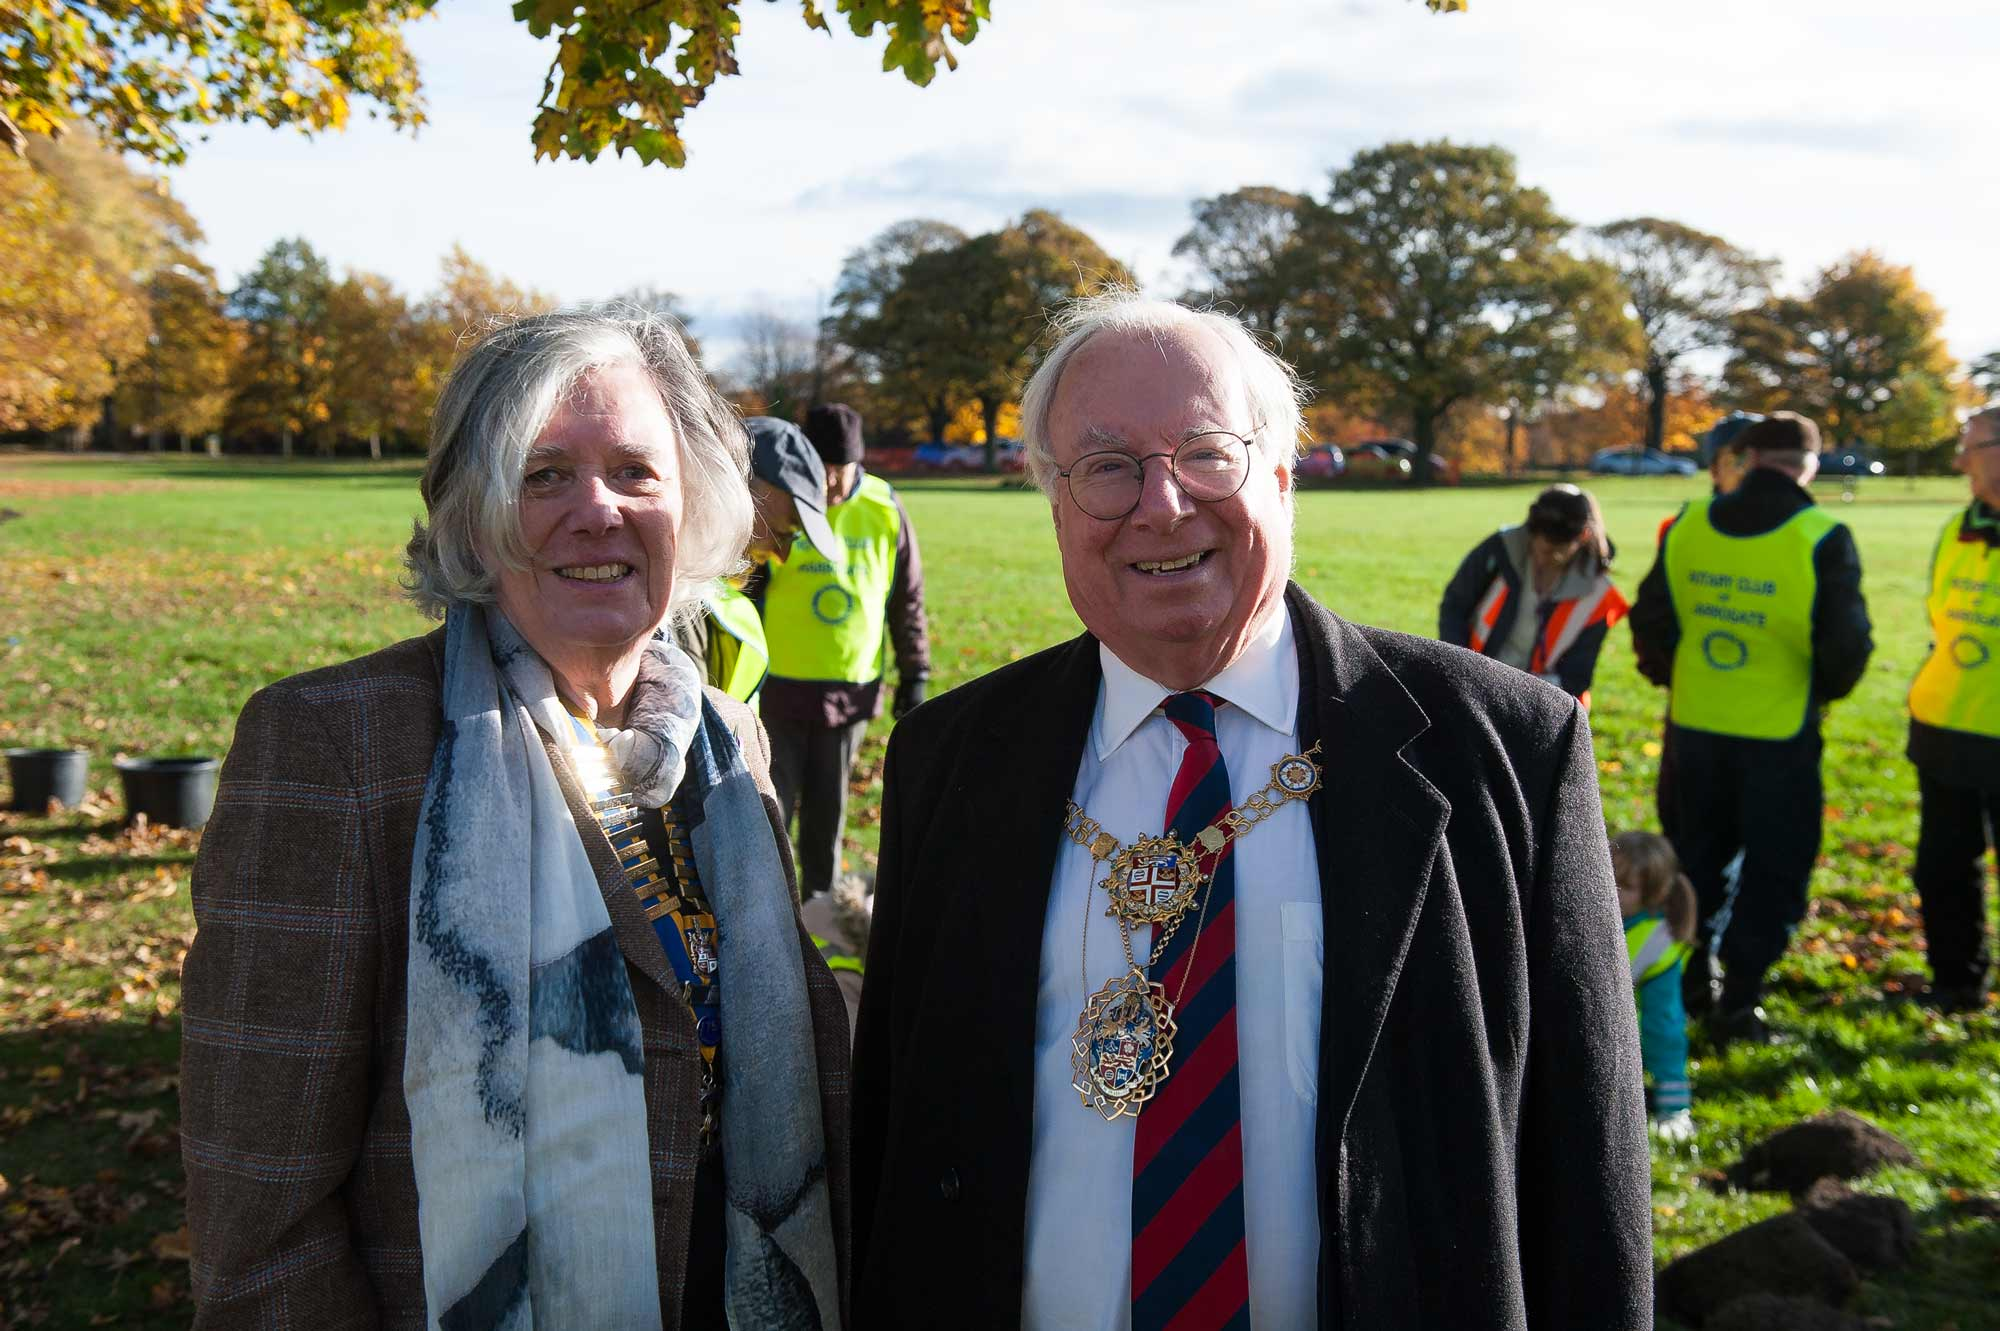 Harrogate Rotary Club President, Margaret-Ann De Courcey-Bayley with the Mayor of Harrogate, Nick Brown